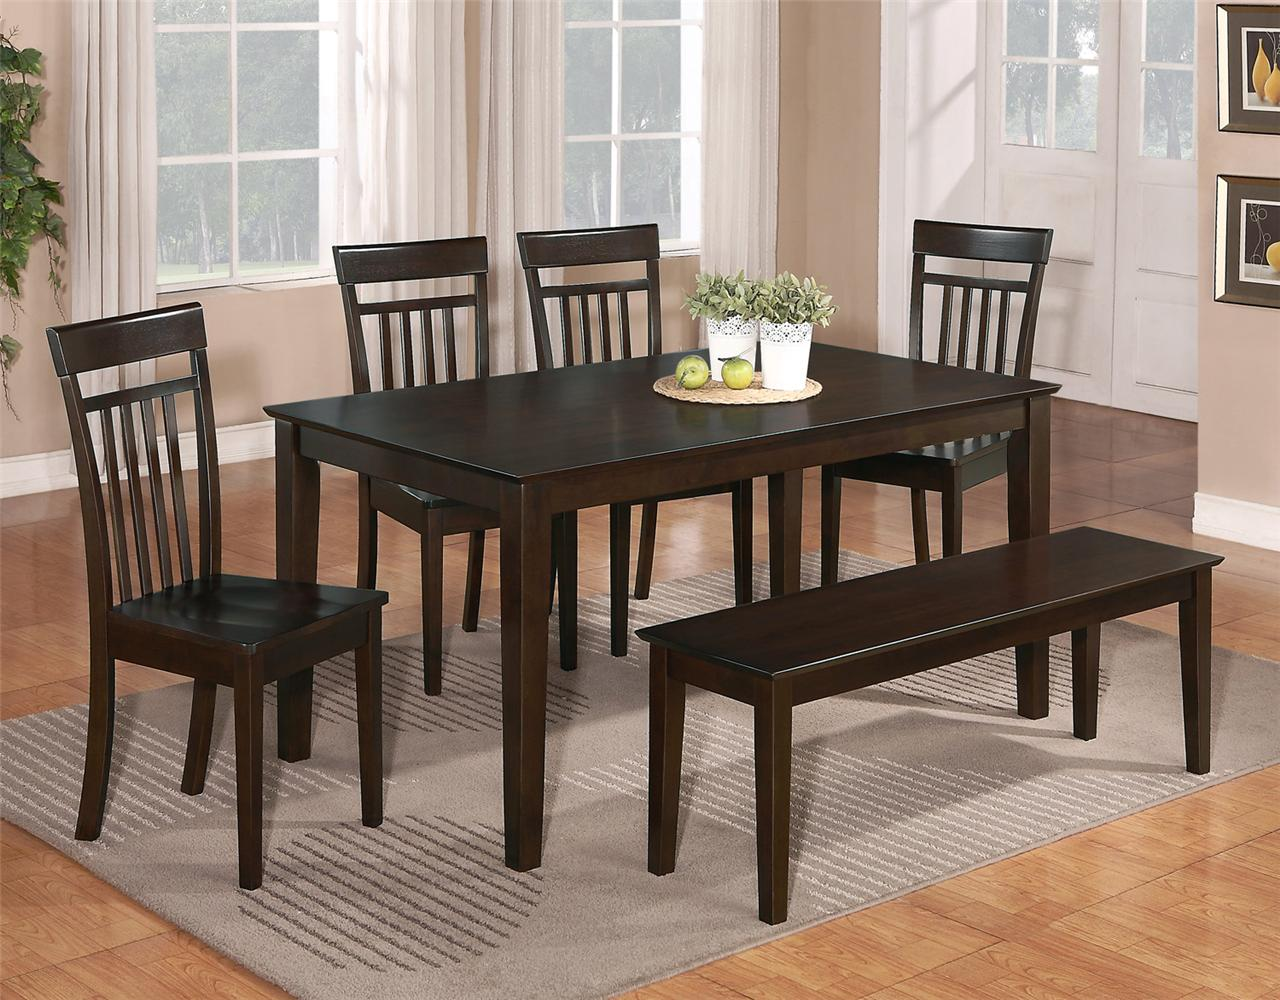 6 pc dinette kitchen dining room set table w 4 wood chair for Kitchen table and chairs set